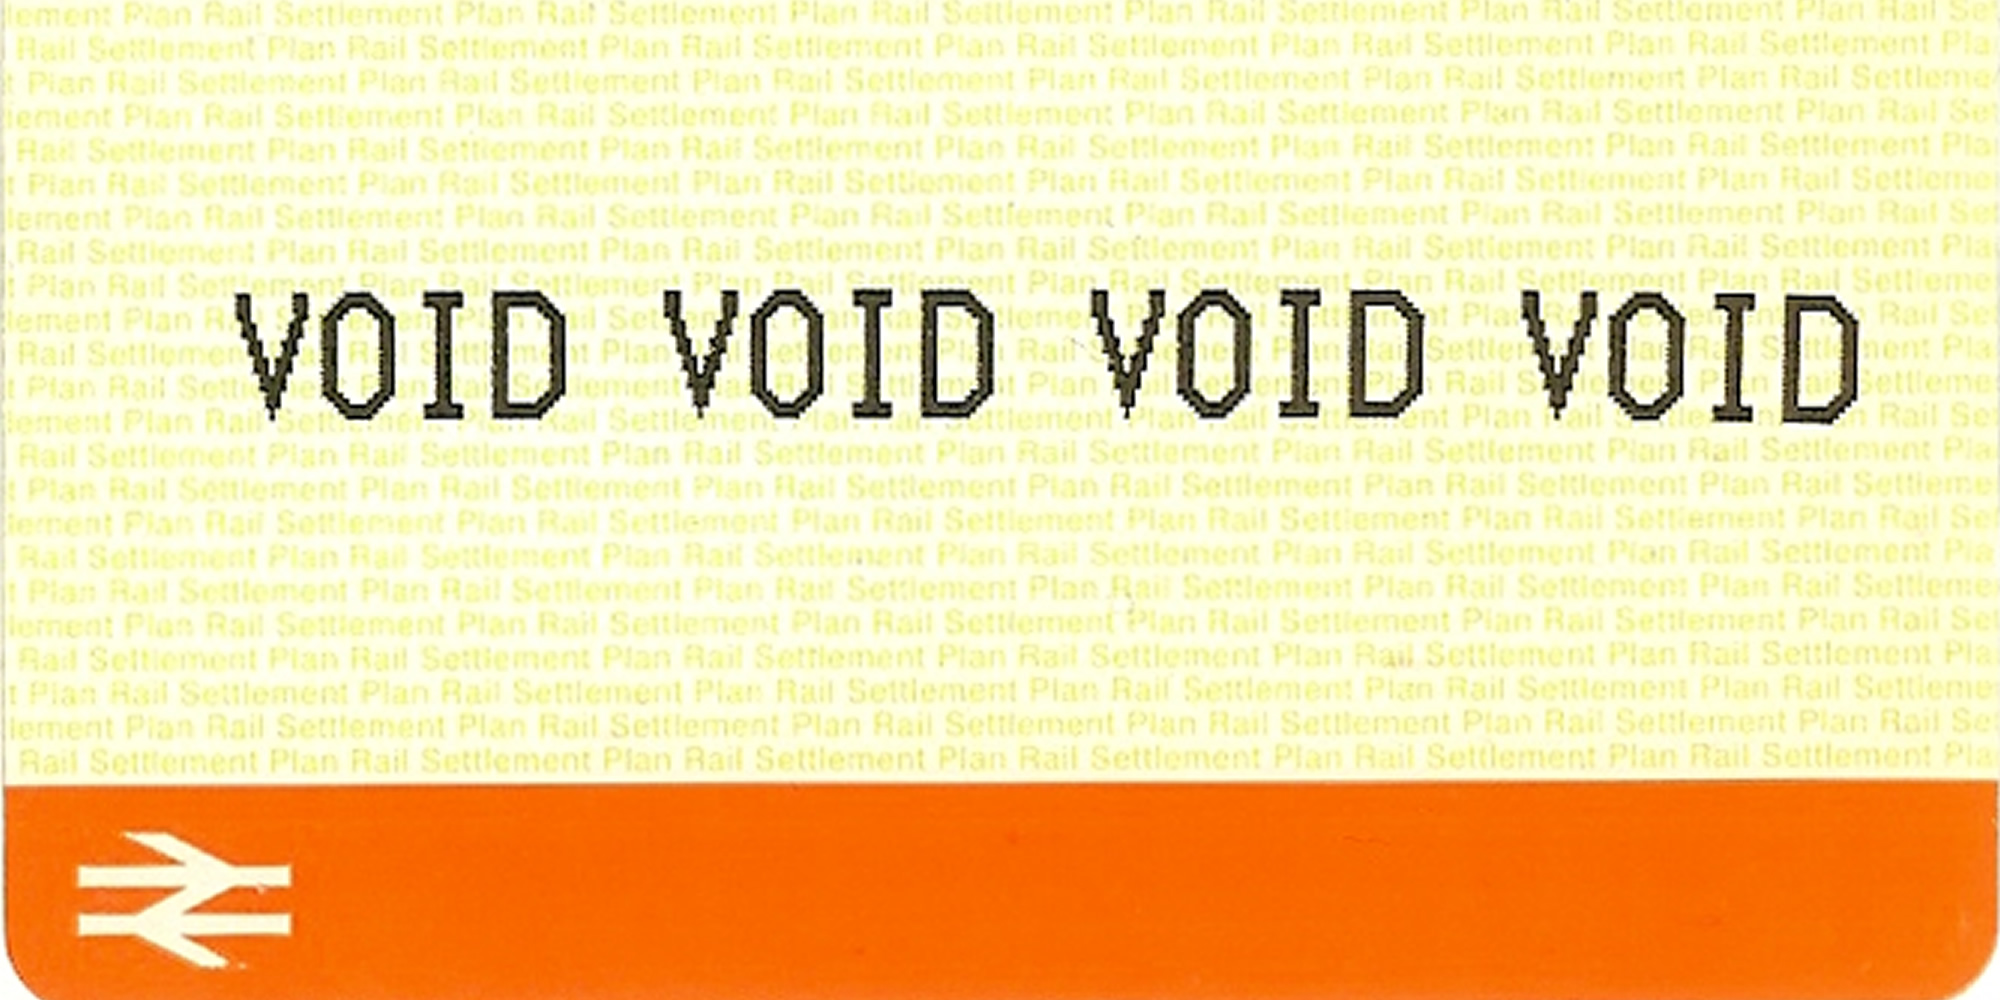 Image: voided train ticket